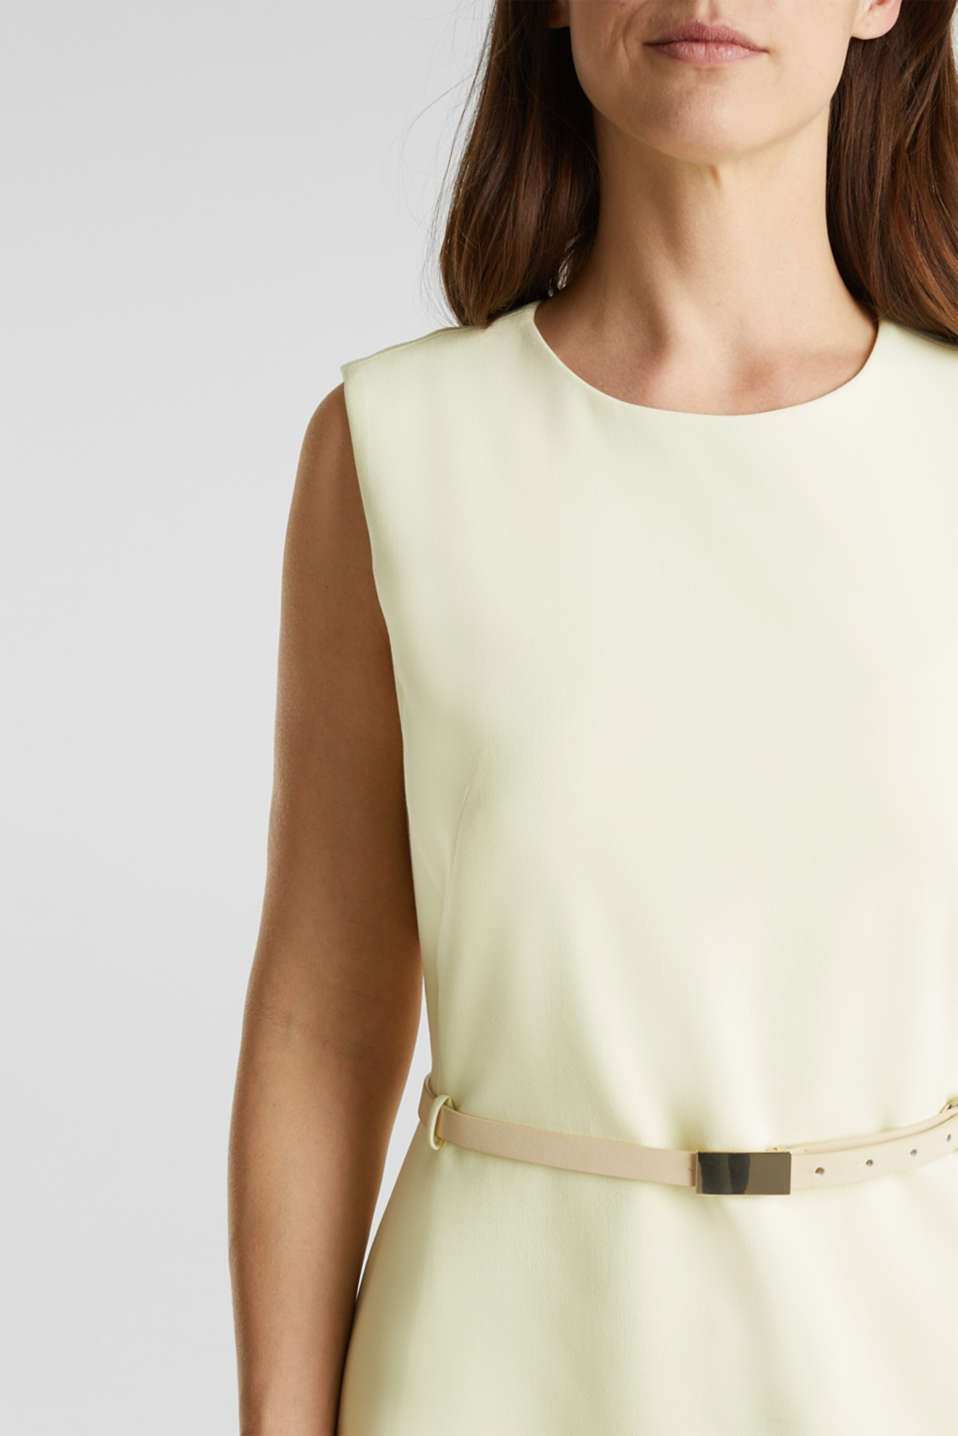 Sheath dress with a buckled belt, LIME YELLOW, detail image number 2